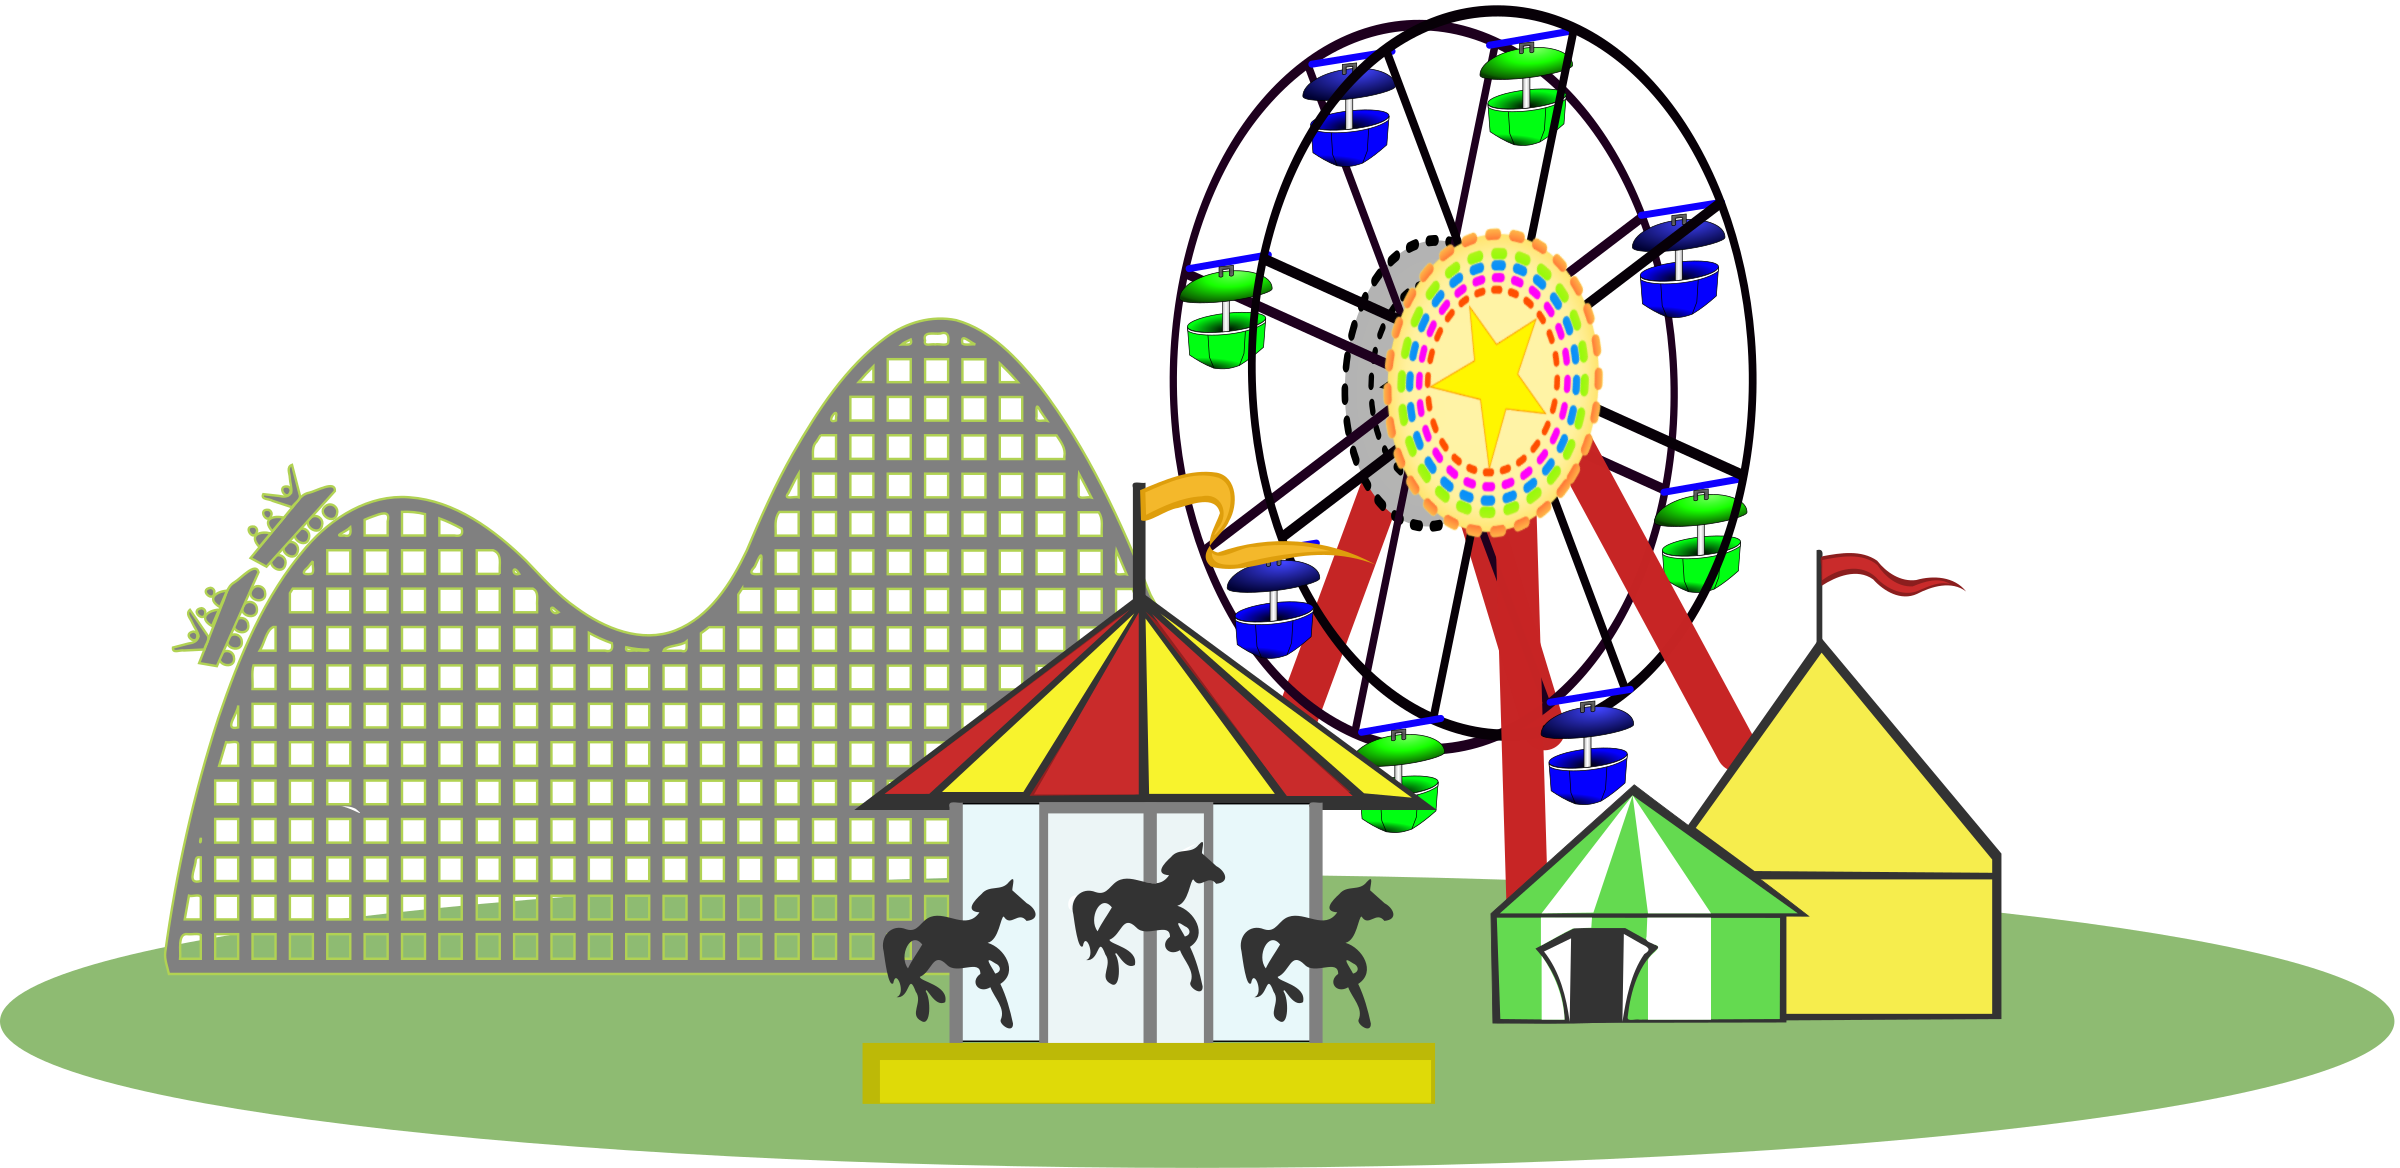 Rollercoaster clipart carnival. Remix of color wide